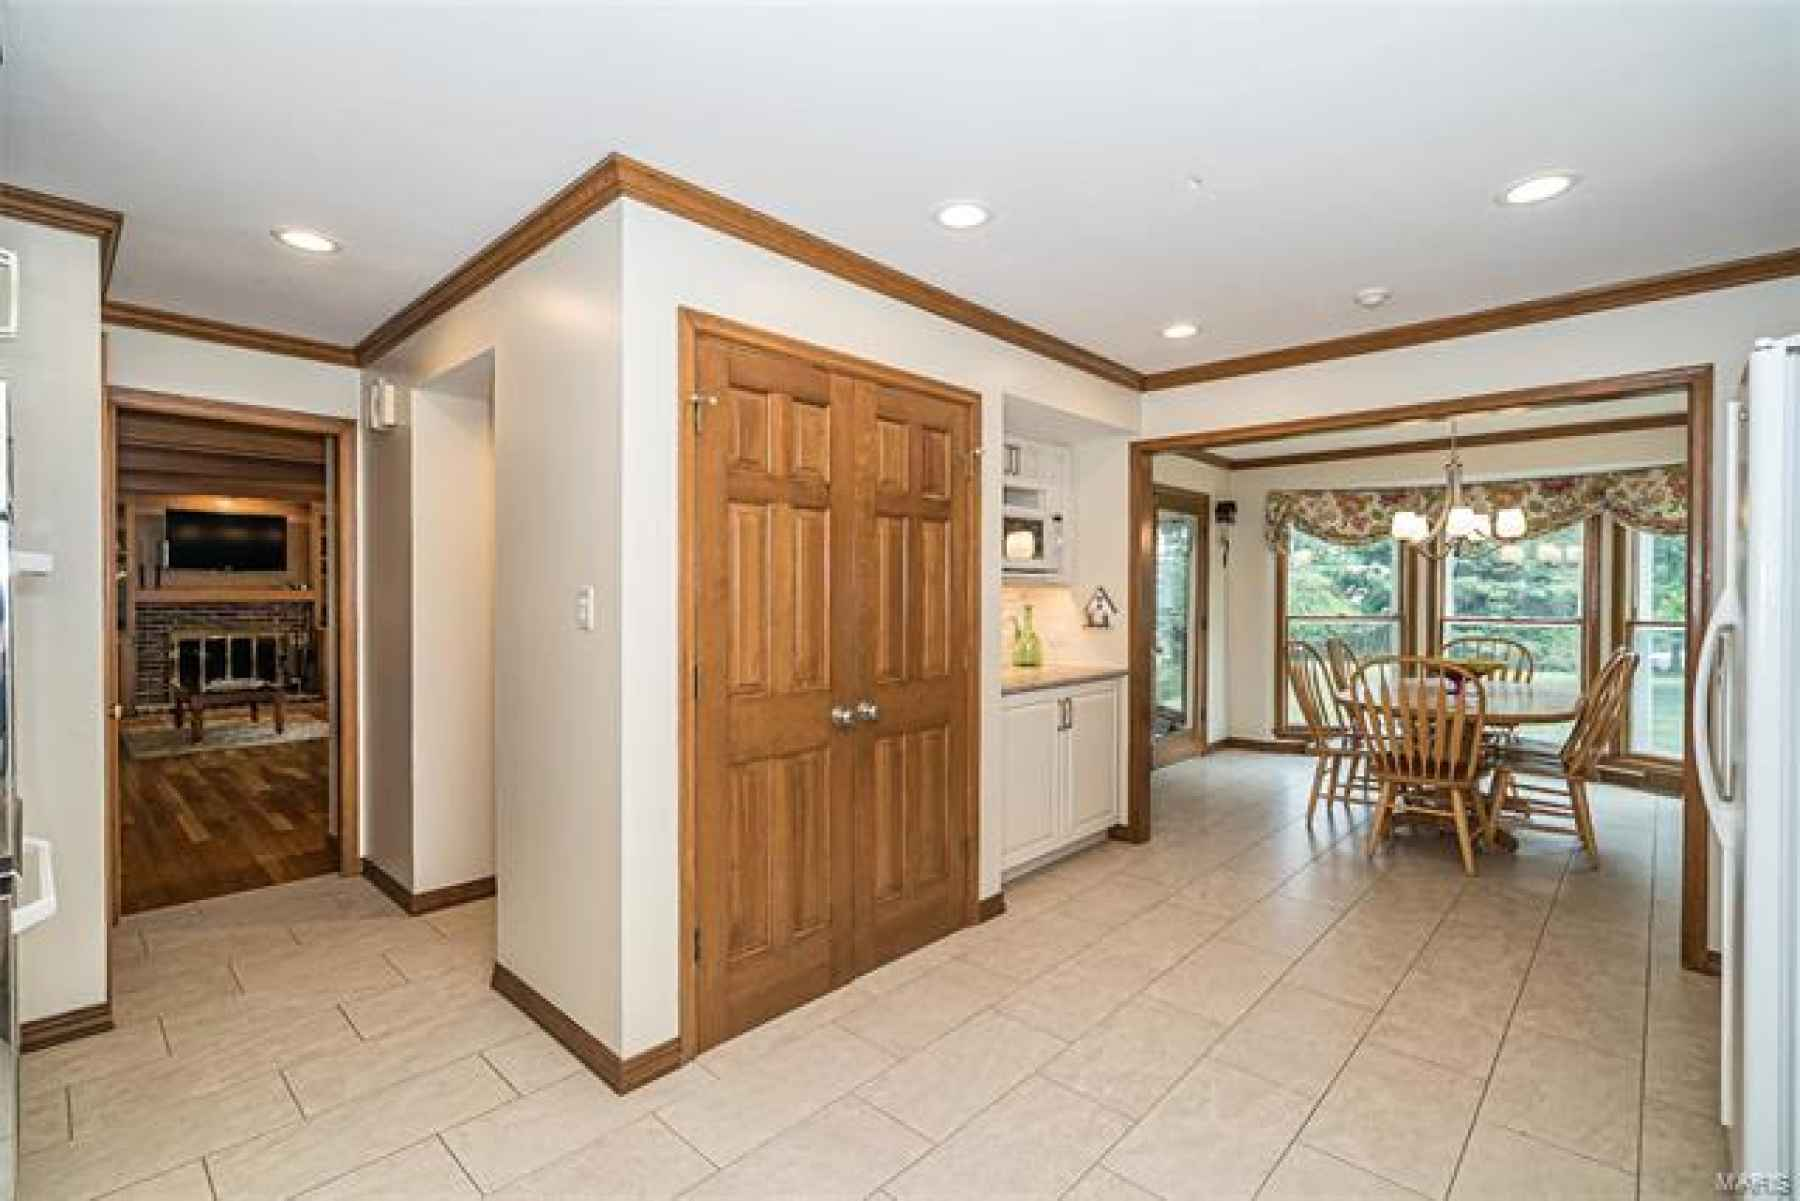 Designer Kitchen with view of yard from Breakfast room and family room. Notice the beautiful porcelain tile.